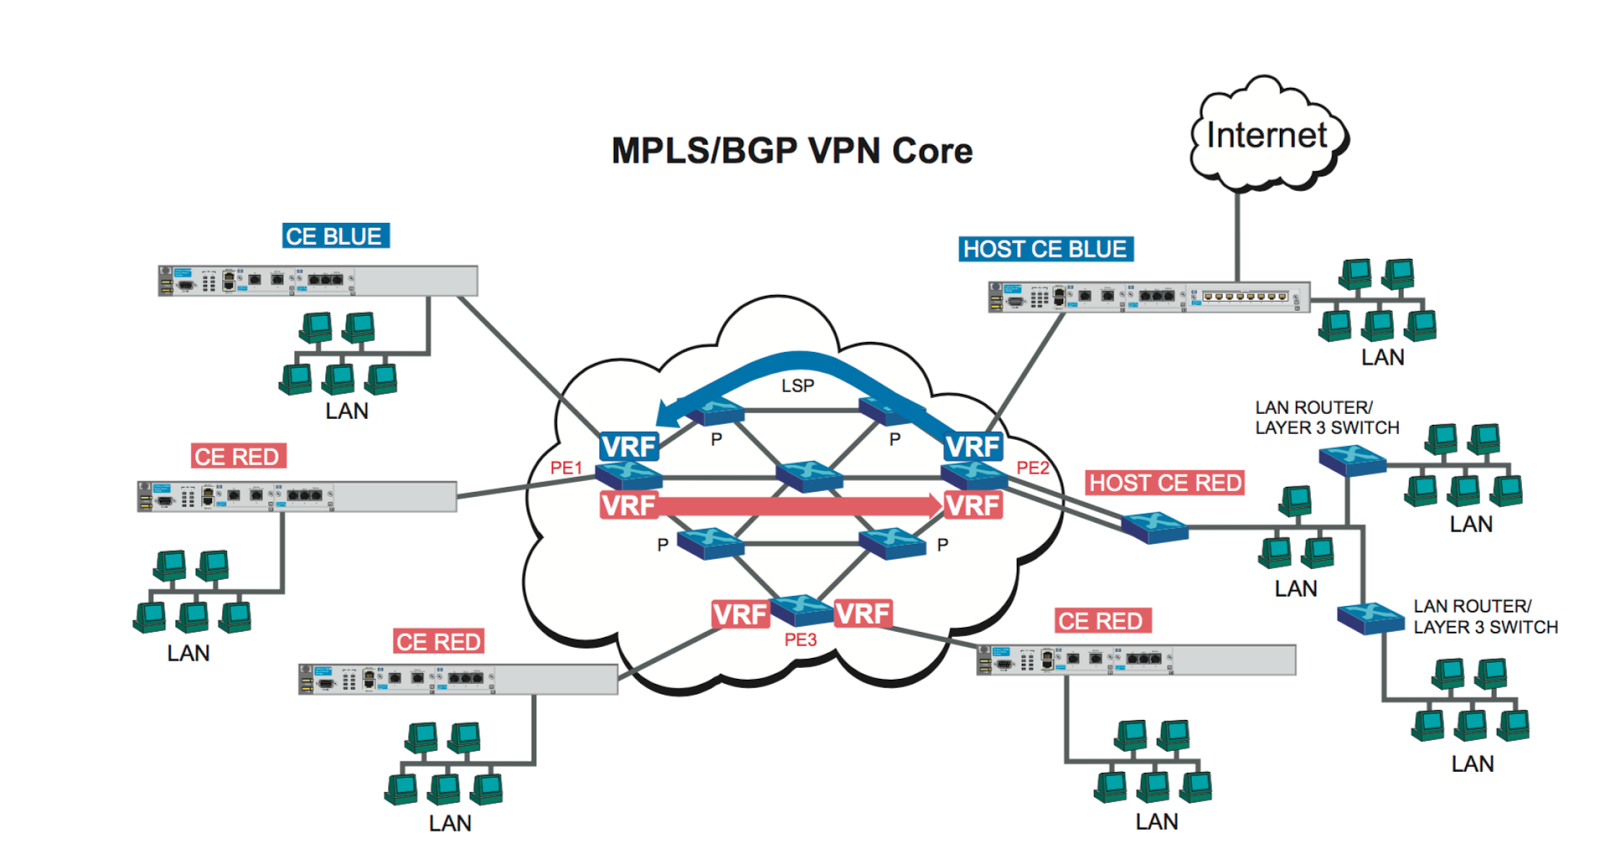 BGP Configurations on HP Routers - Route XP Networks Private